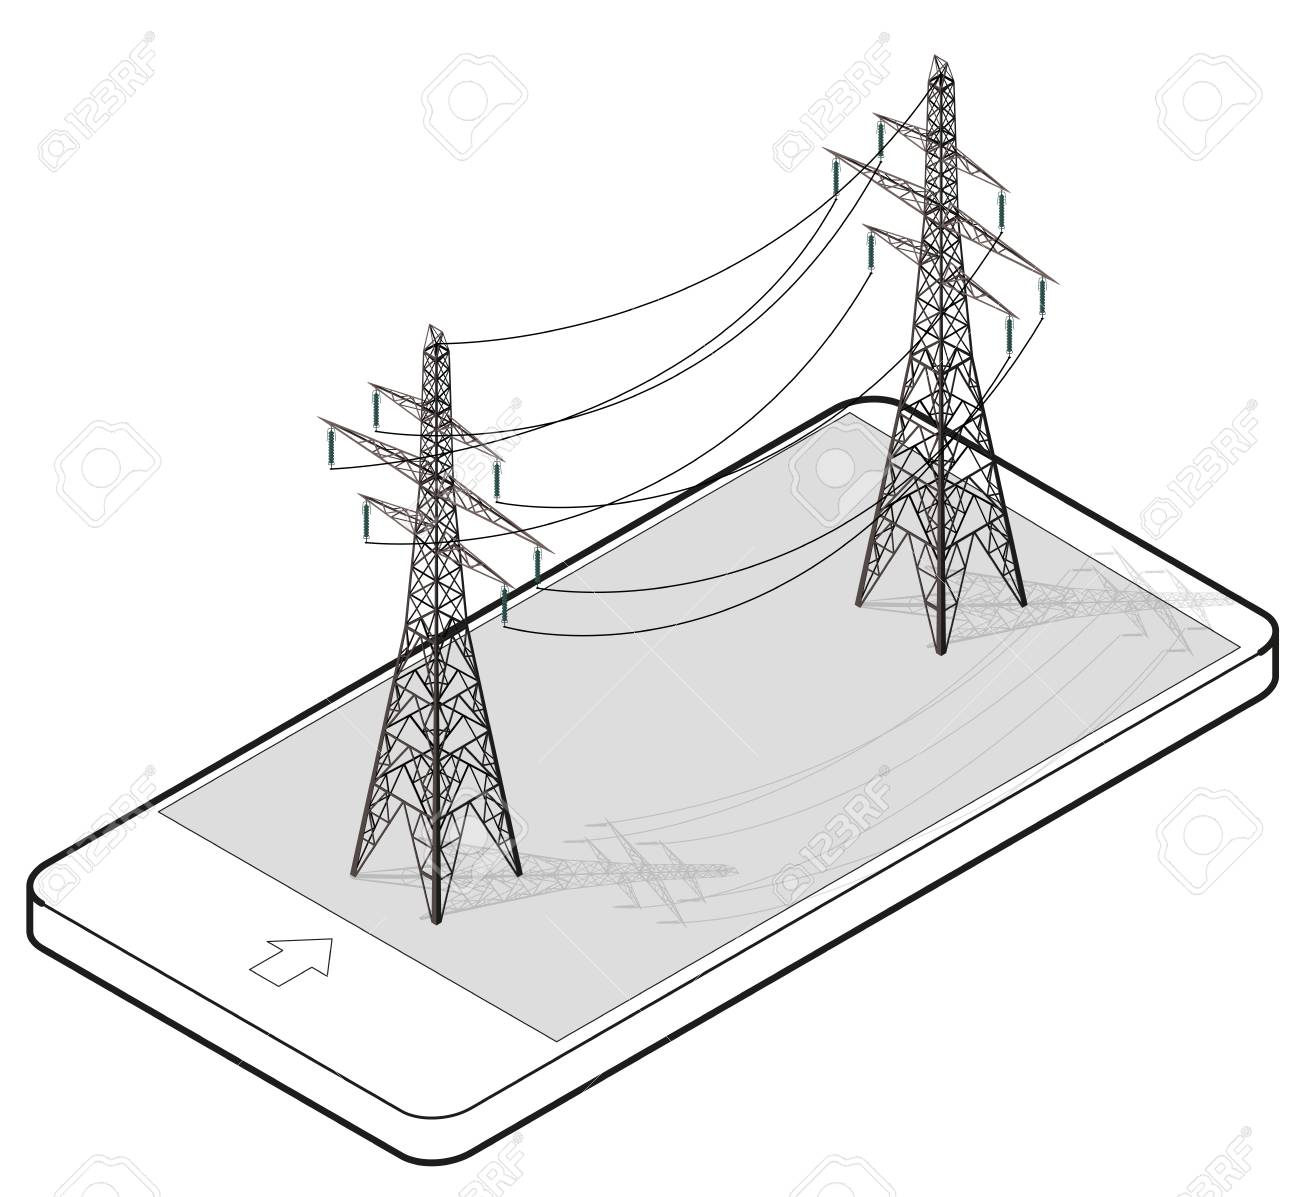 hight resolution of vector vector high voltage pylons in mobile phone isometric perspective wire metal pole voltage isolated background outlined power line pylons